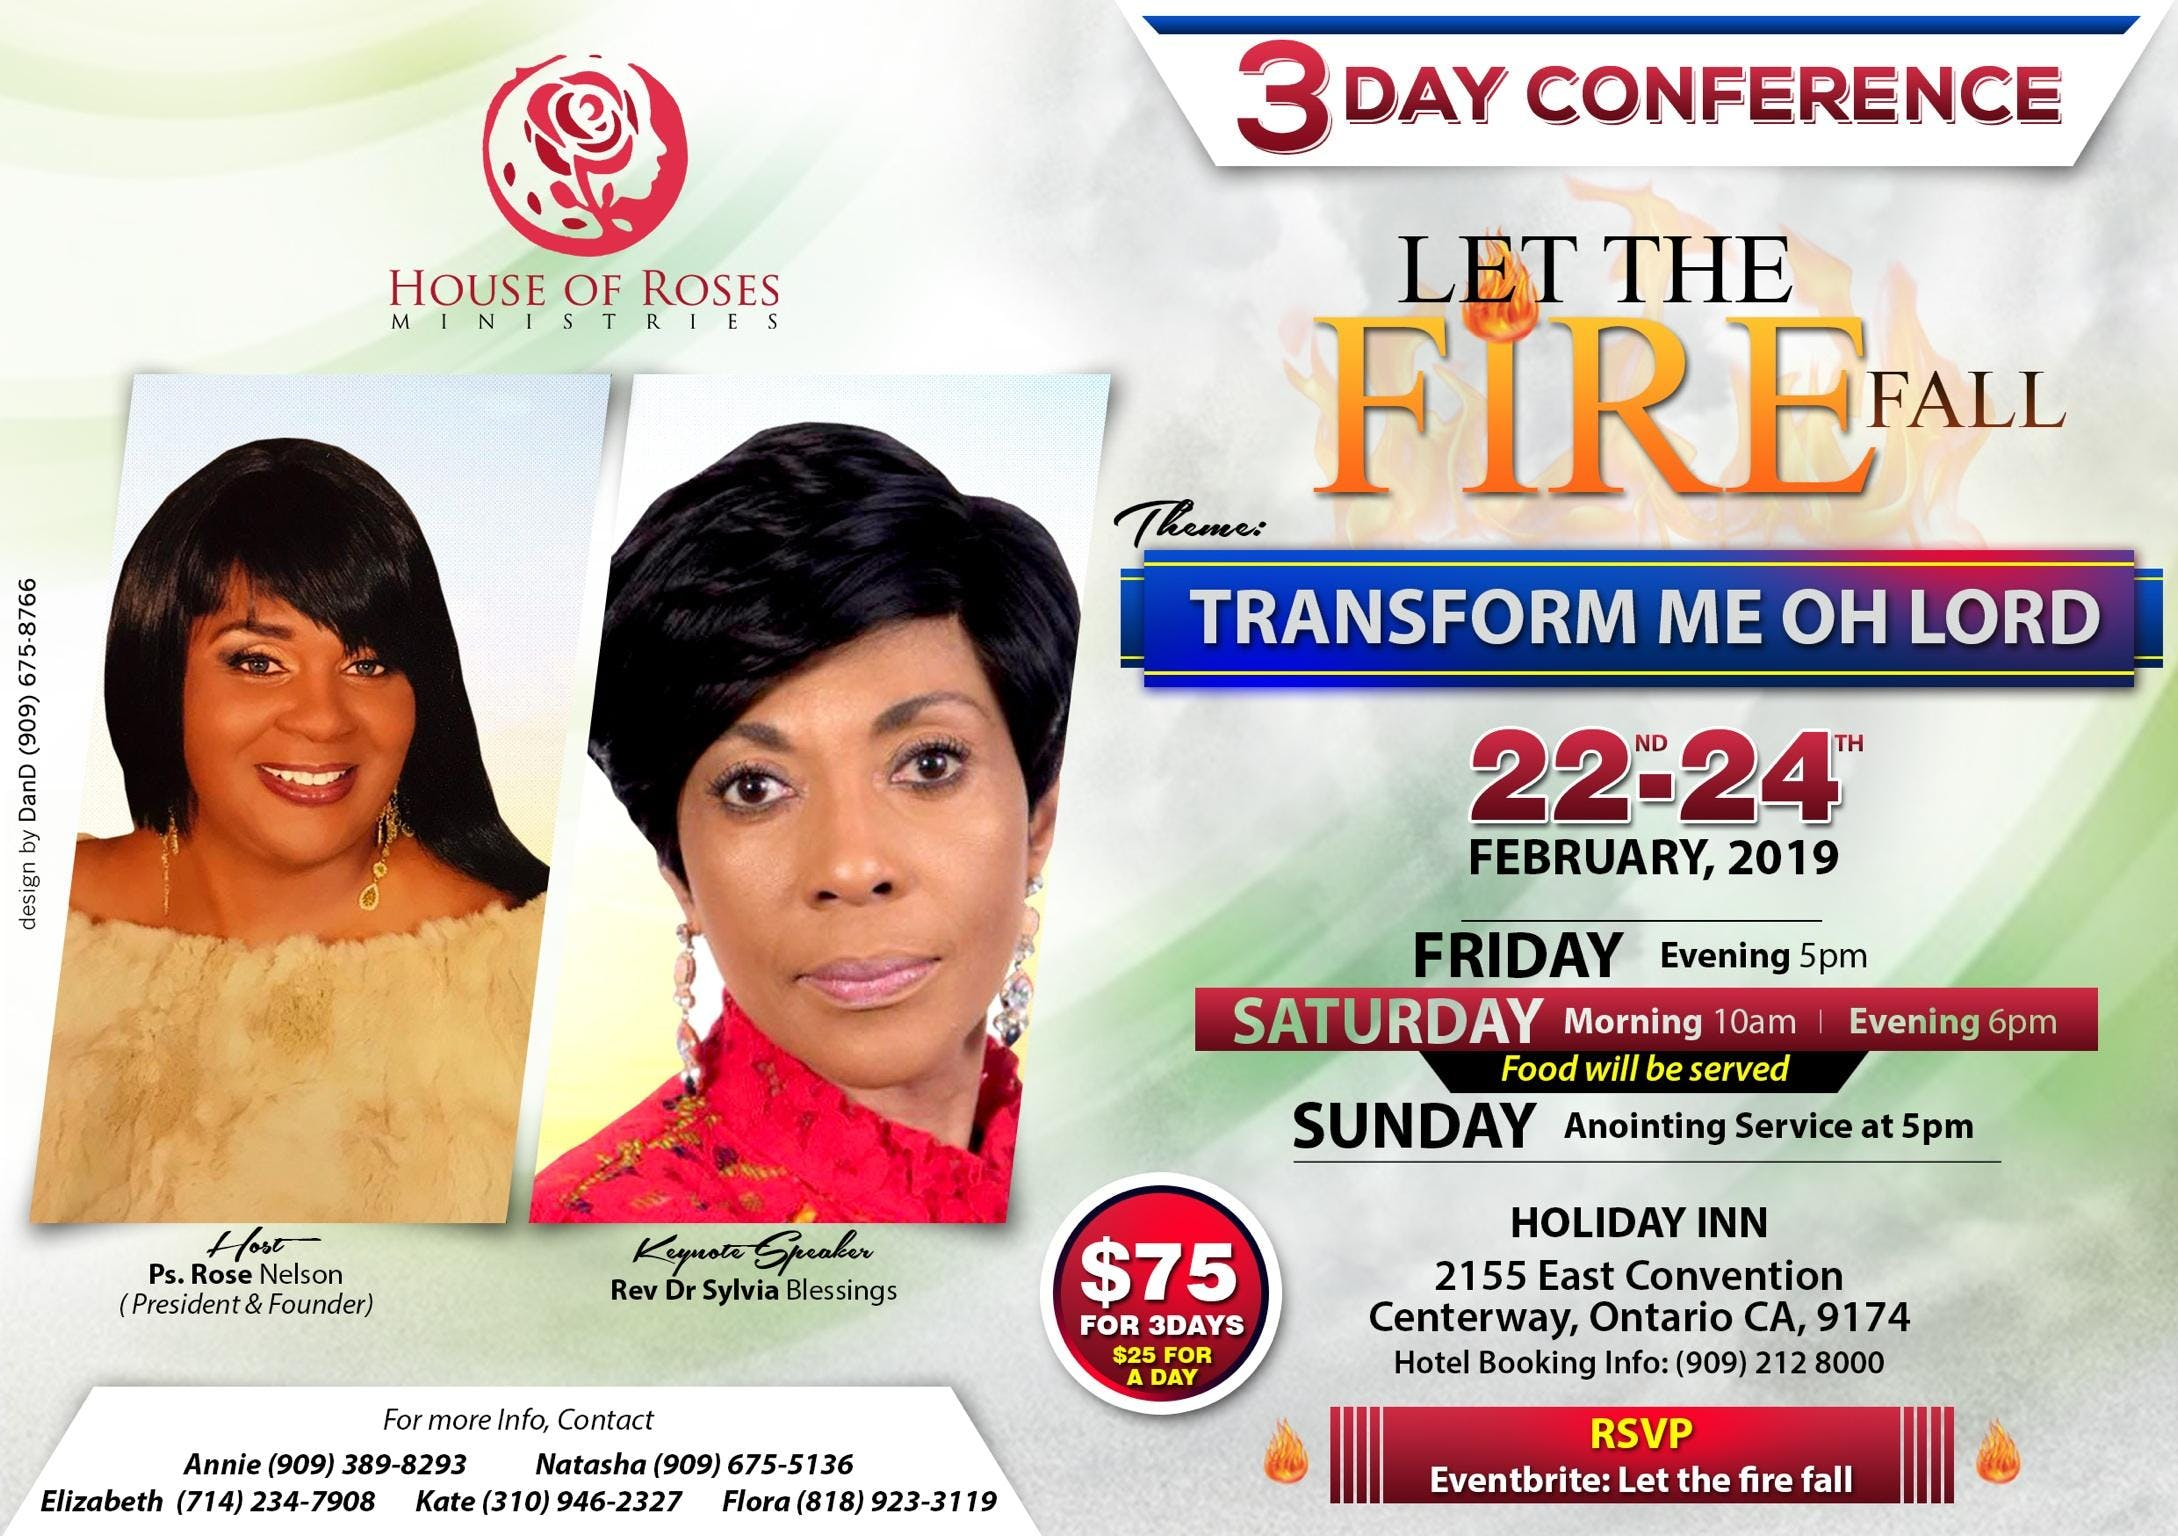 Let The Fire Fall (Transform me Oh Lord)